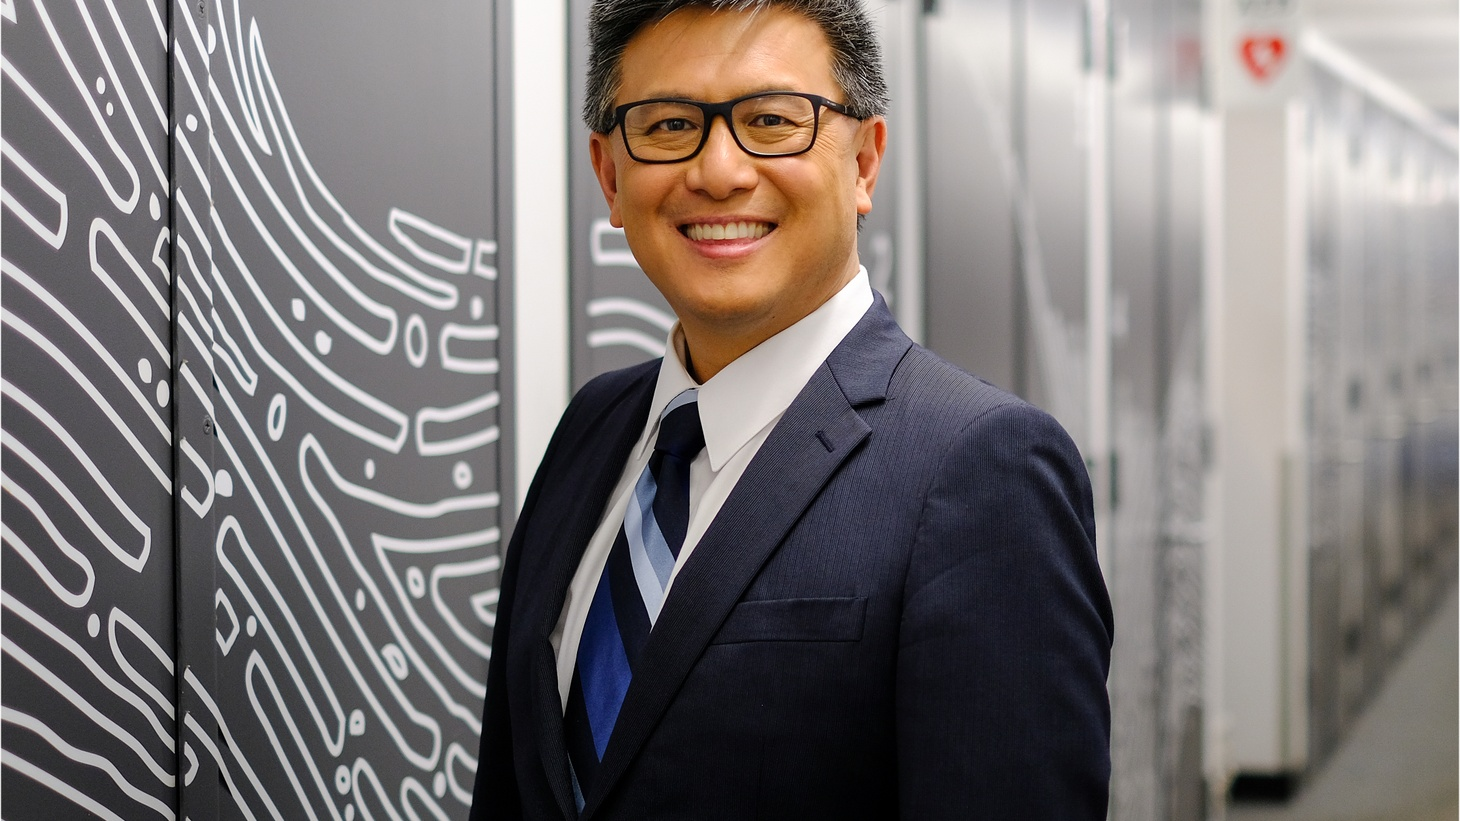 Democrat John Chiang has been state treasurer since 2015. Before that, he was the state controller for two terms.